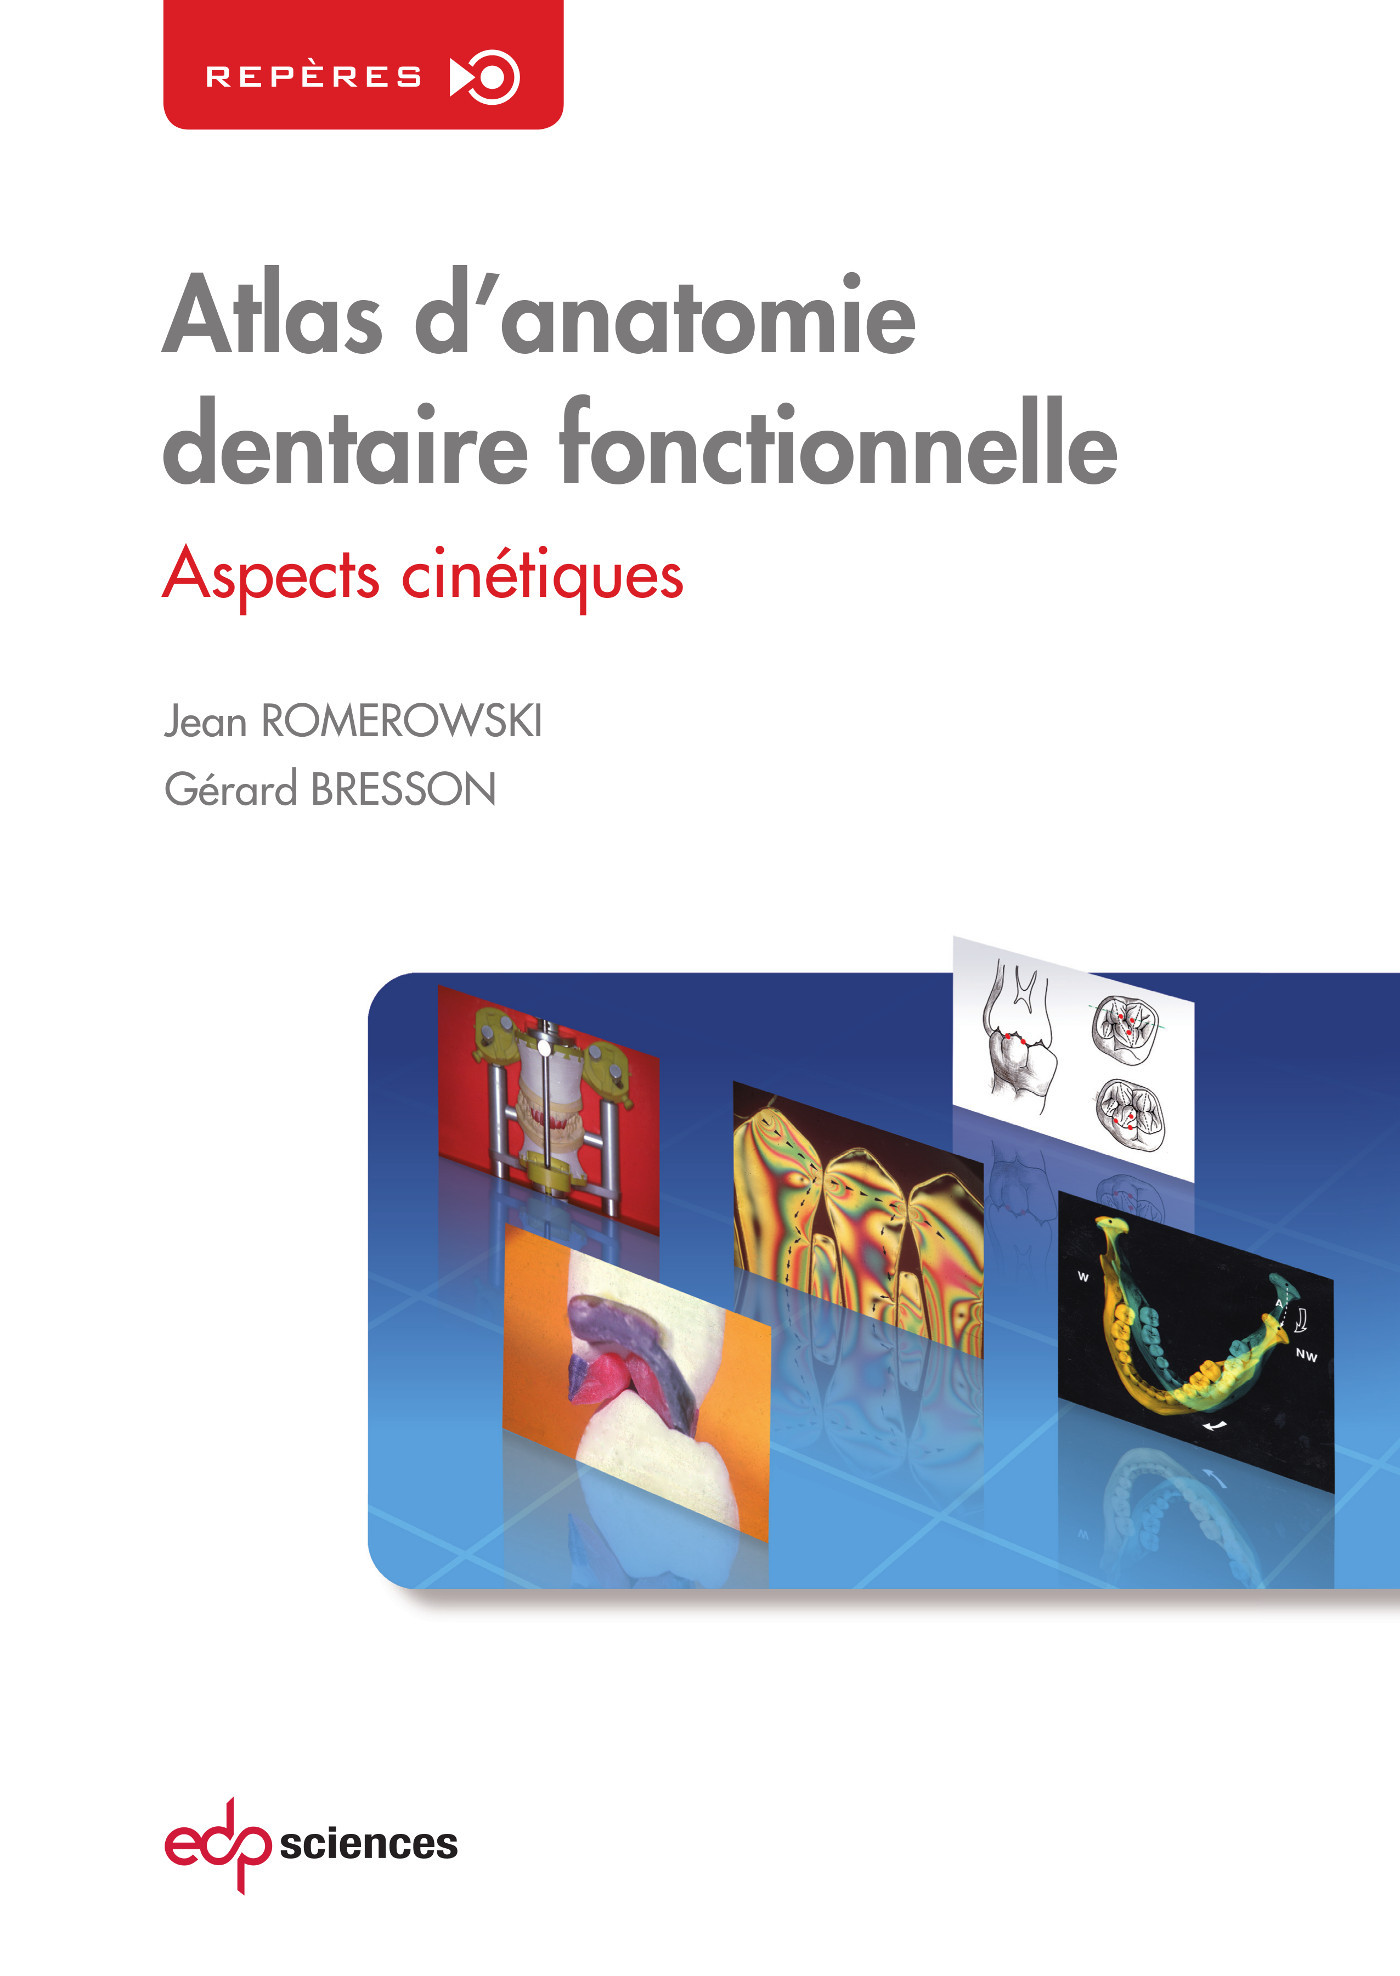 ATLAS D ANATOMIE DENTAIRE FONCTIONNELLE